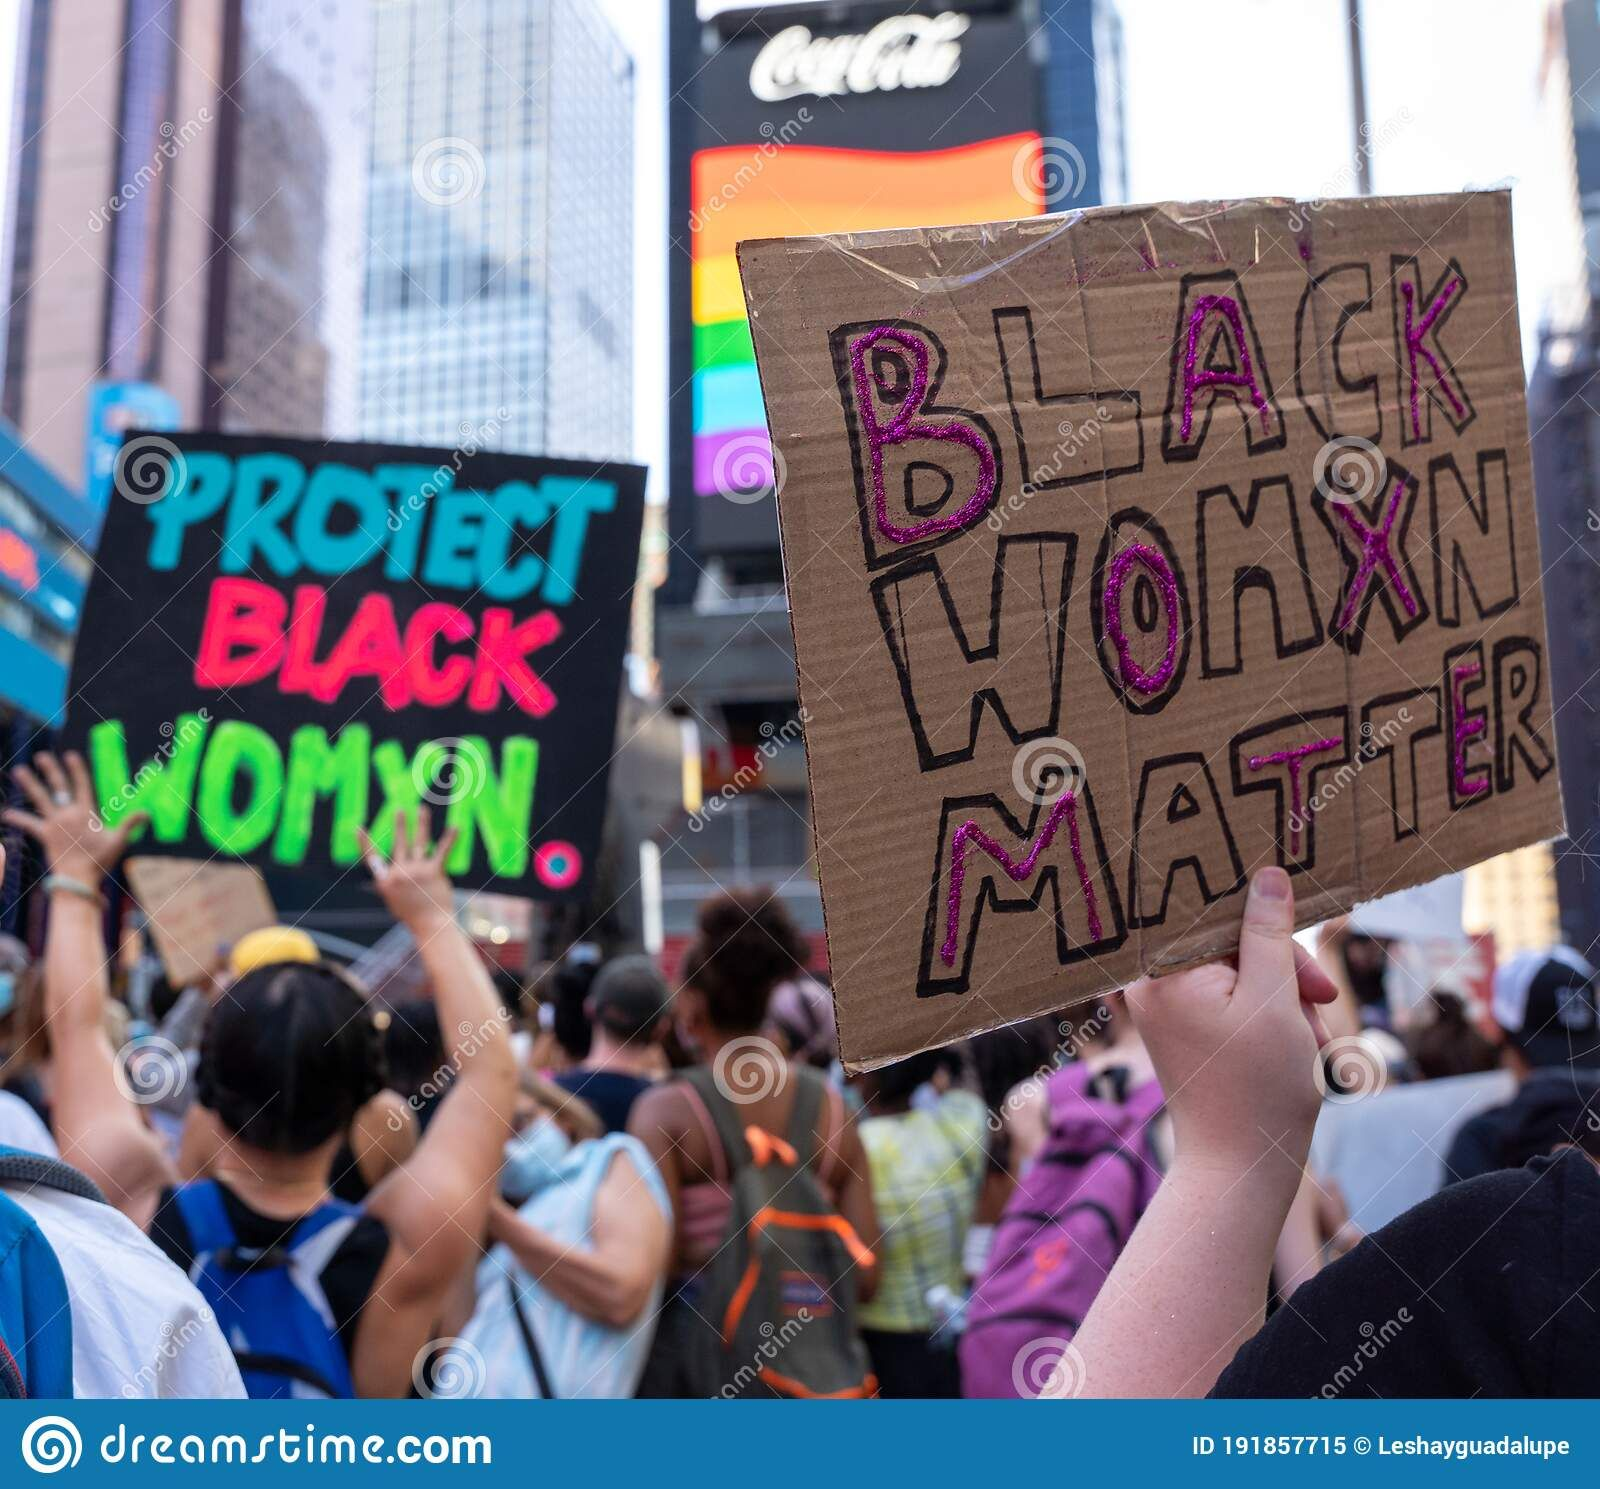 Pin By Dreamstime Stock Photos On Black Lives Matter New York City Ny Black Lives Matter Protest Times Square New York